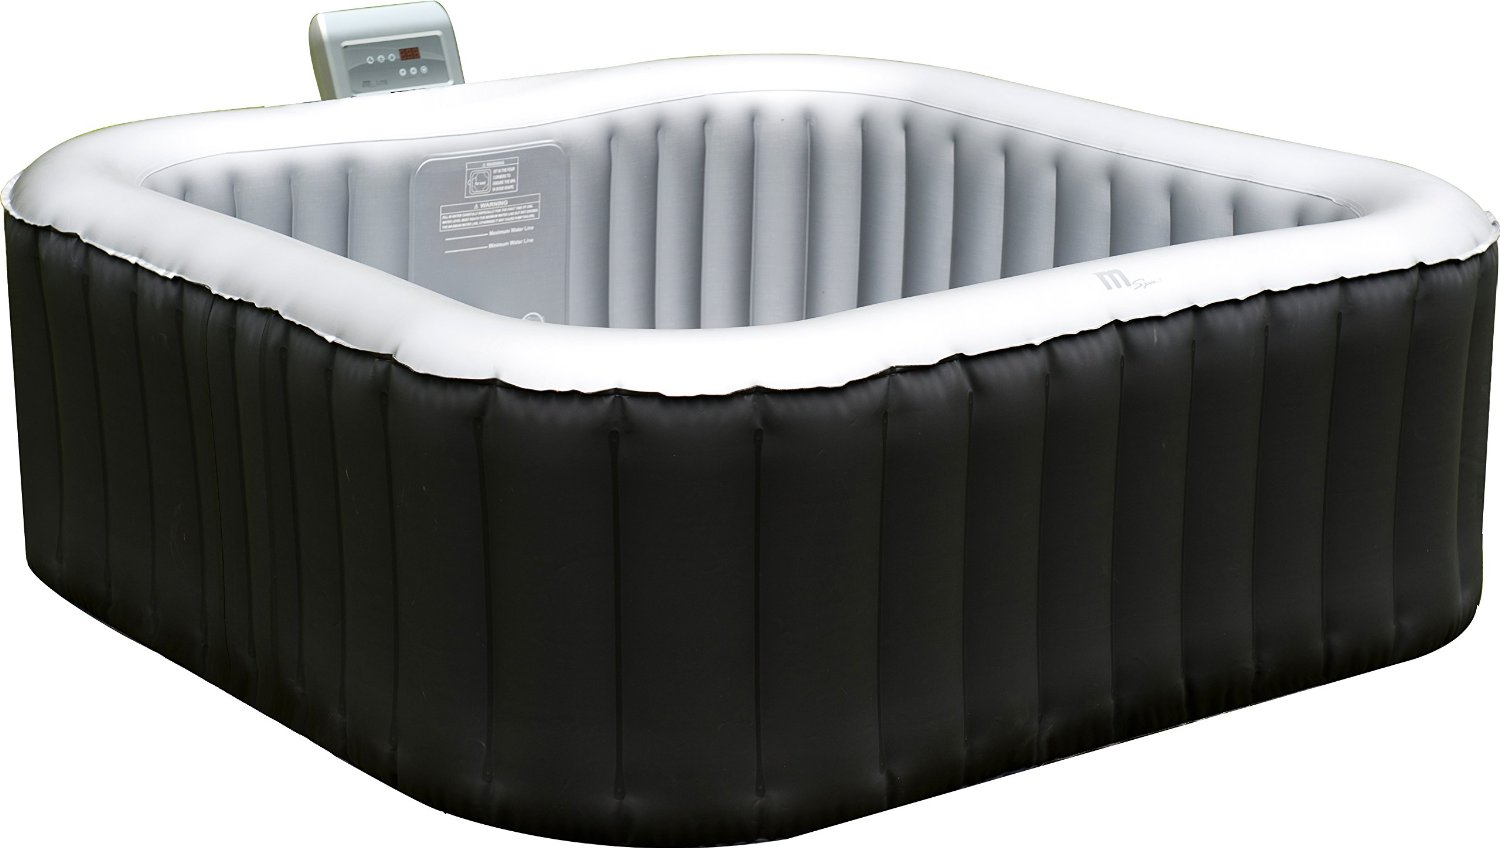 Mspa alpine inflatable hot tub review inflatable hot tub for Obi intex pool